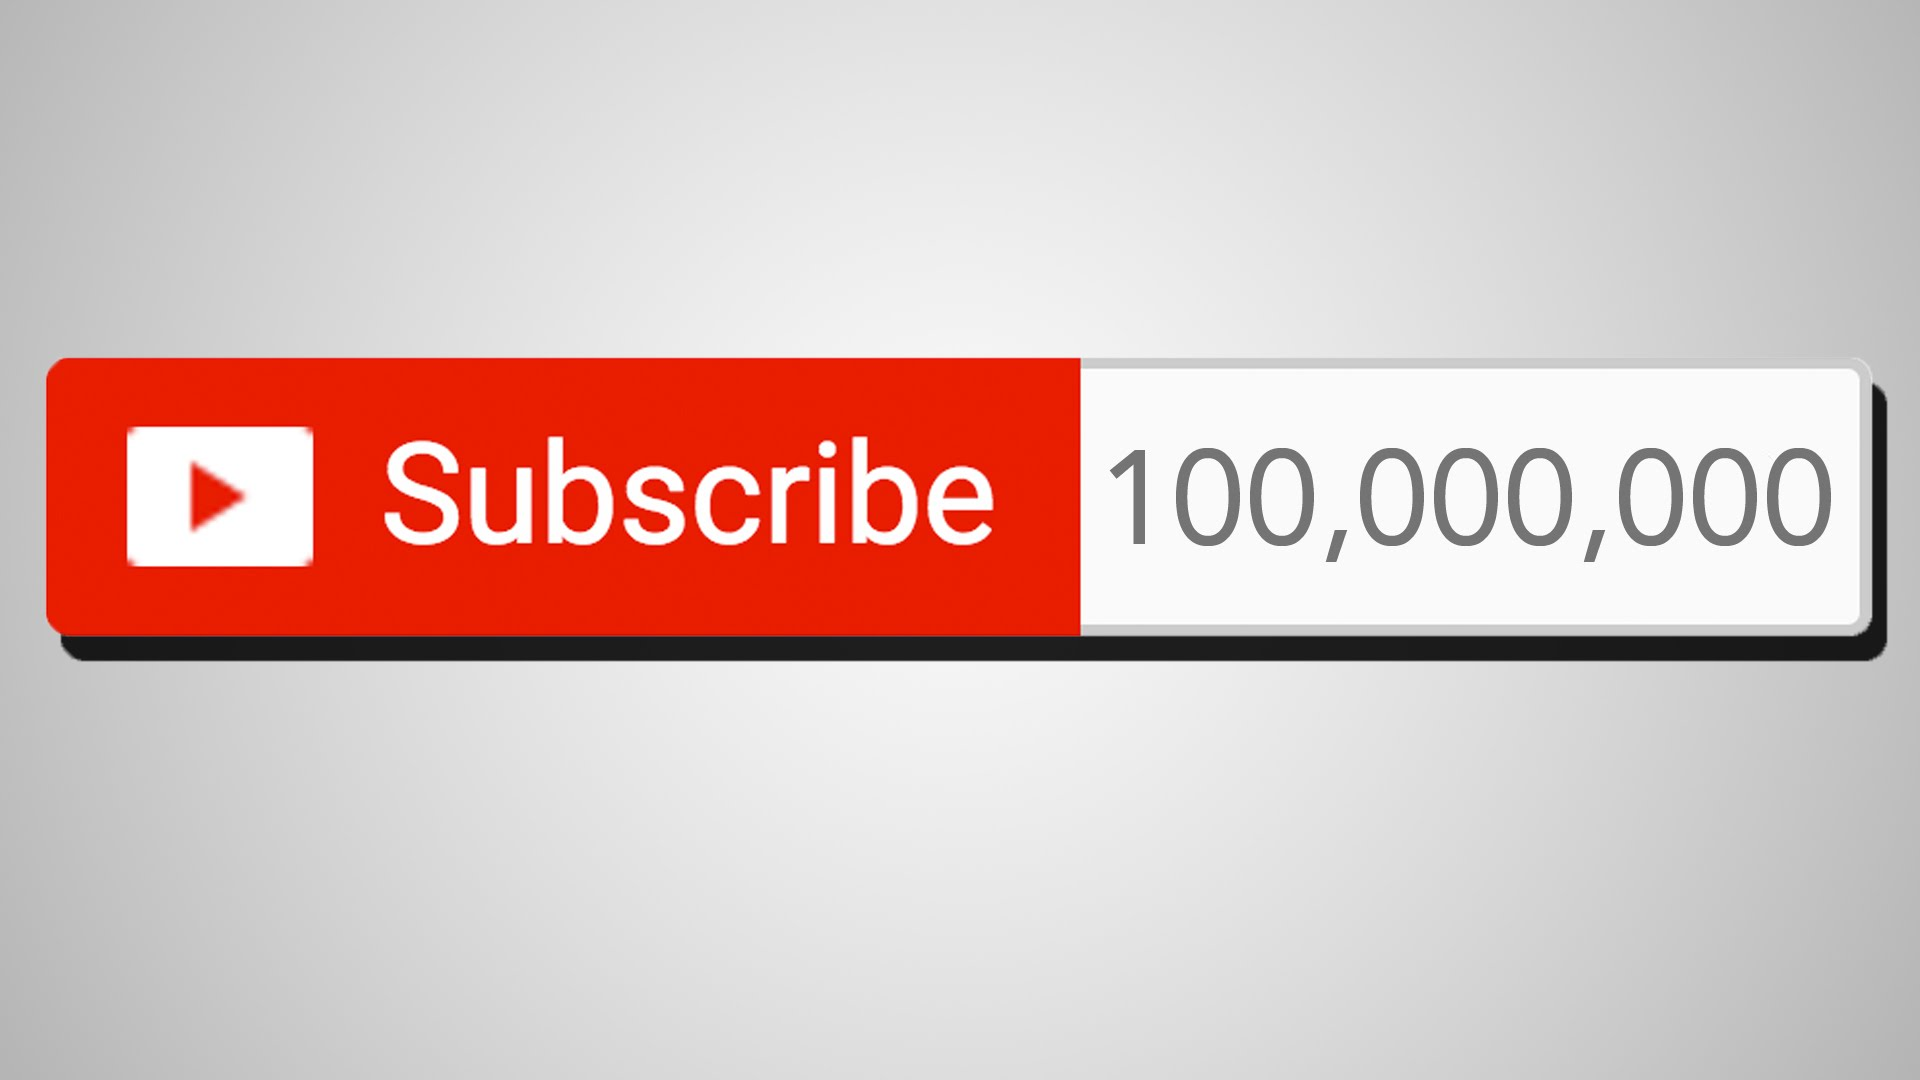 see me if you desire to buy 1000 real human subscribers from me